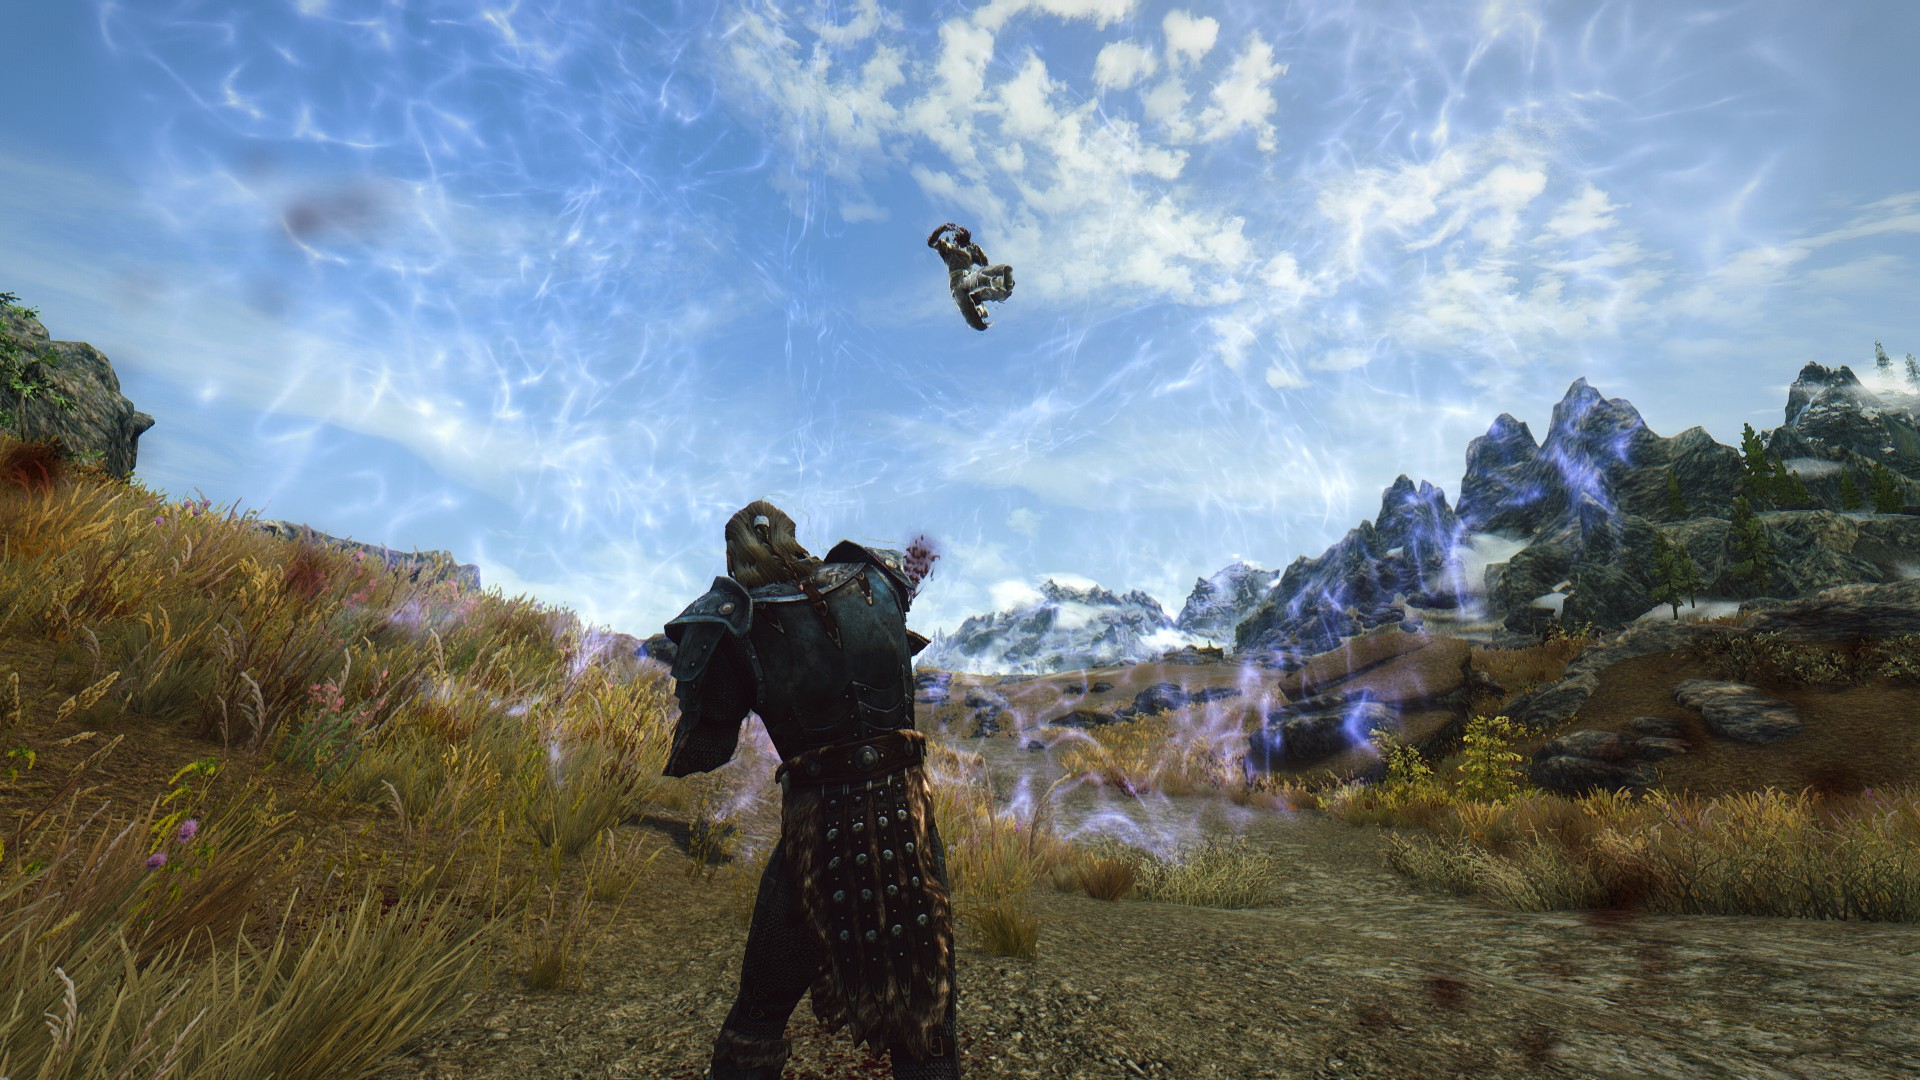 Skyrim 'Strength of the Gods' mod sends enemies soaring with